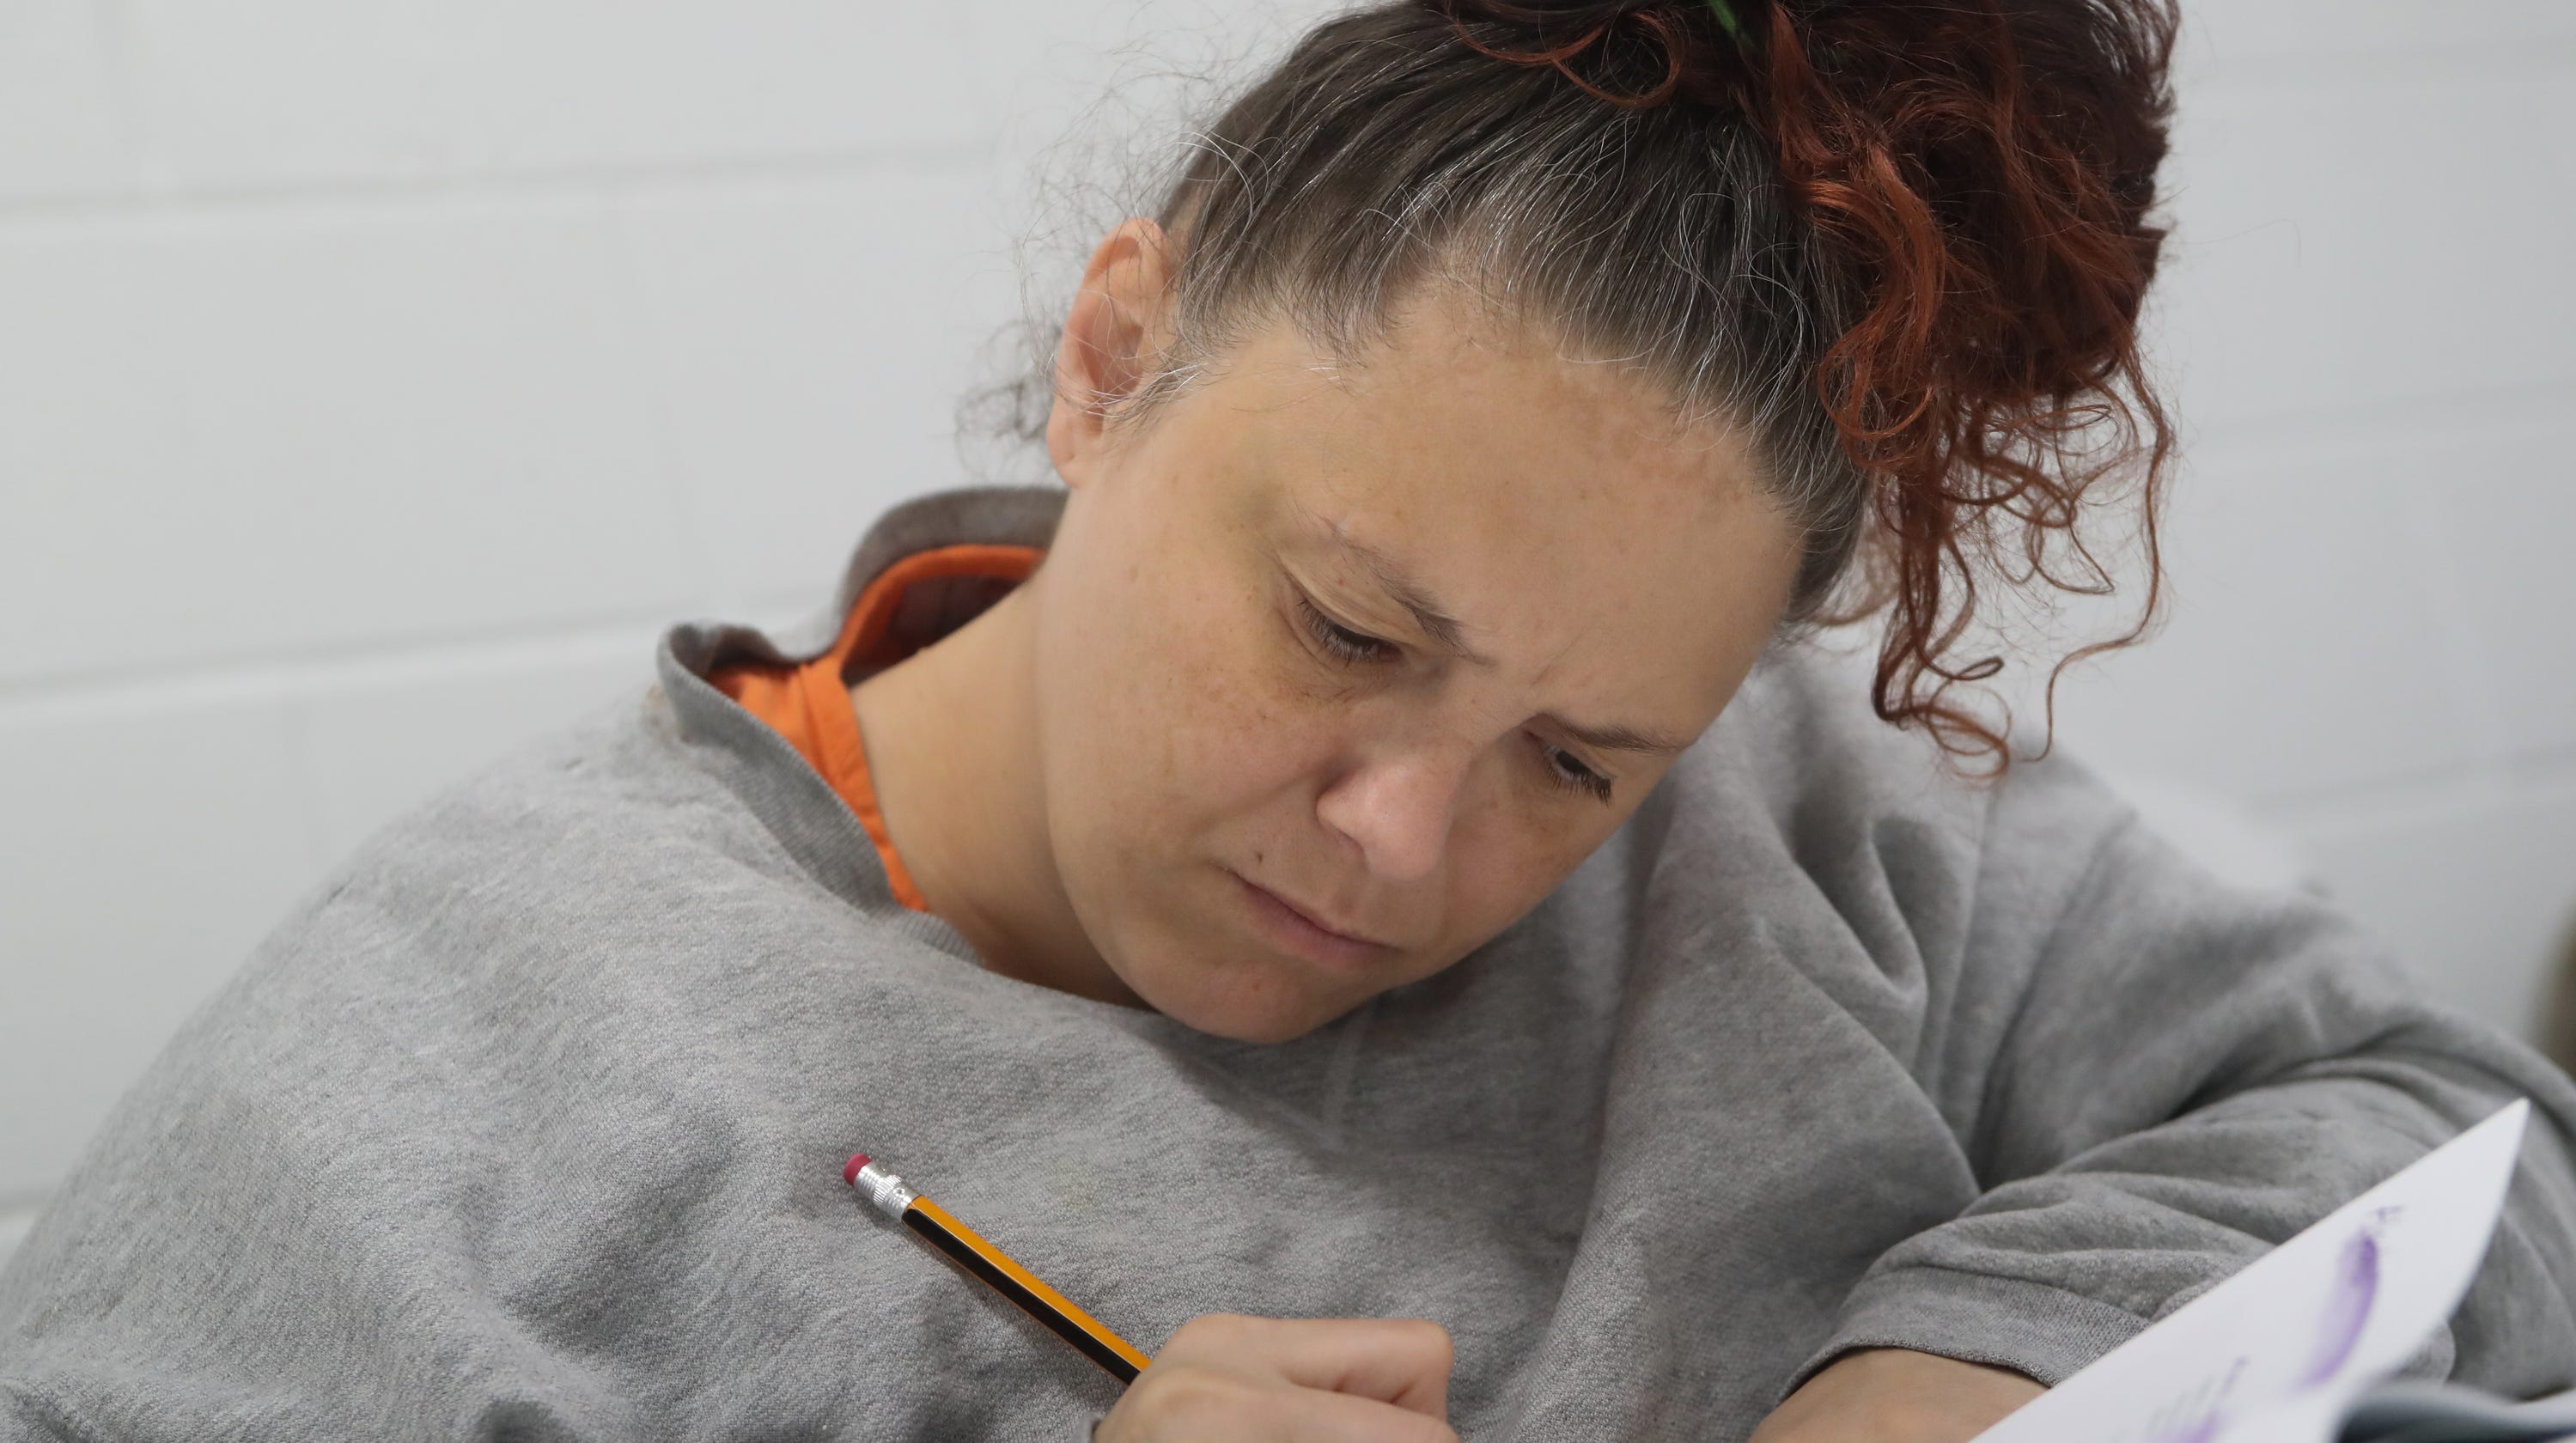 After years of drug-dealing, inmate working toward a better future